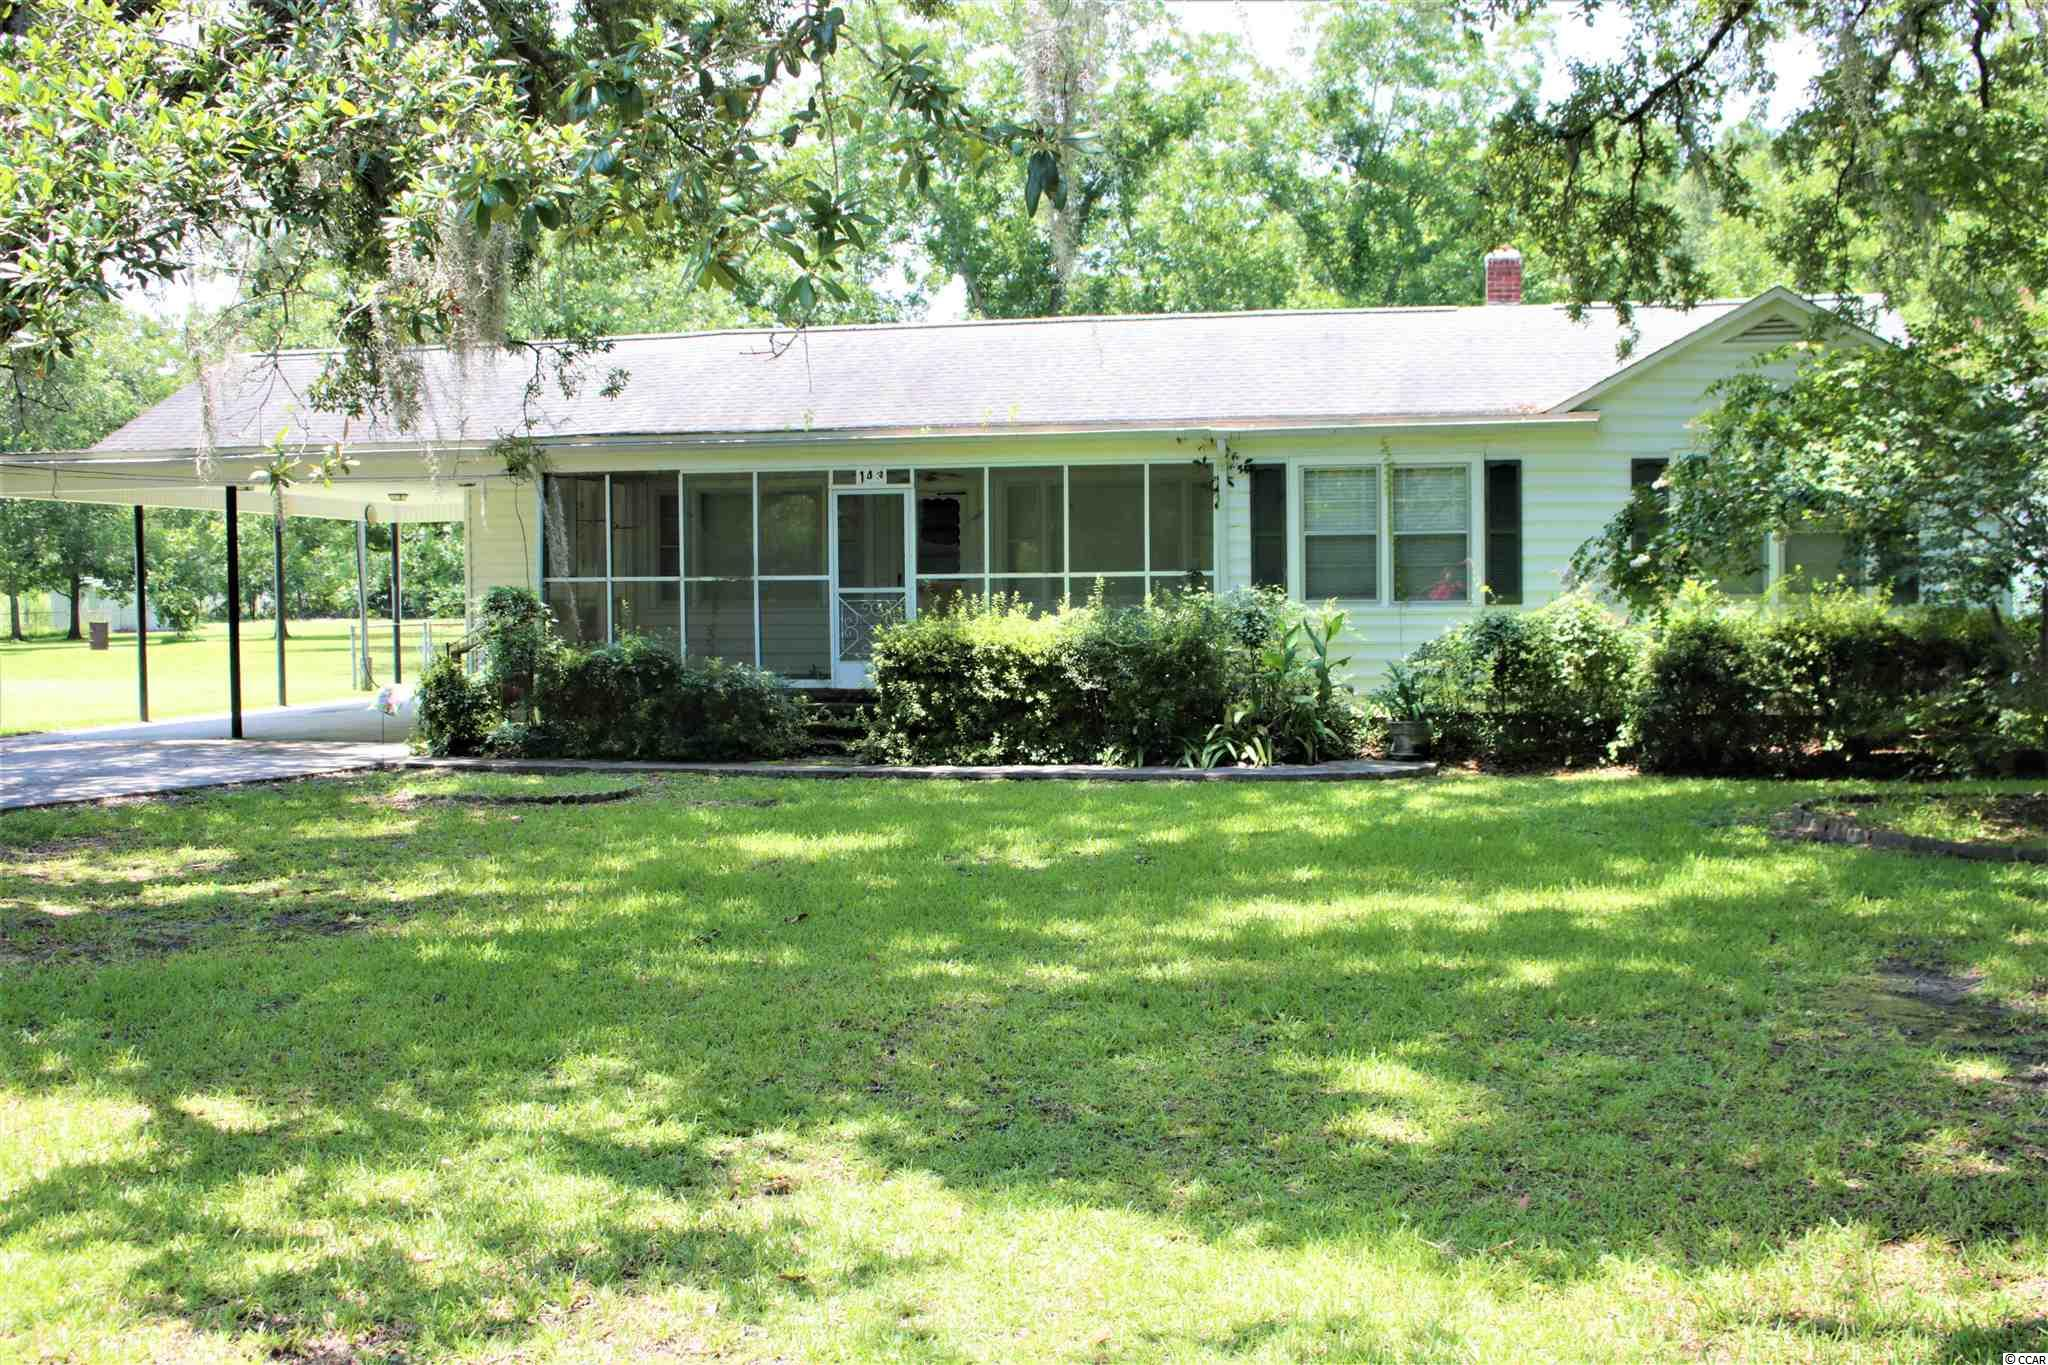 Nice 3 bed 2 bath home. Great location just outside of the city. Features include hardwood floors with large bedrooms with a carport and detached garage on a .67 acre lot. More pitchure to come.